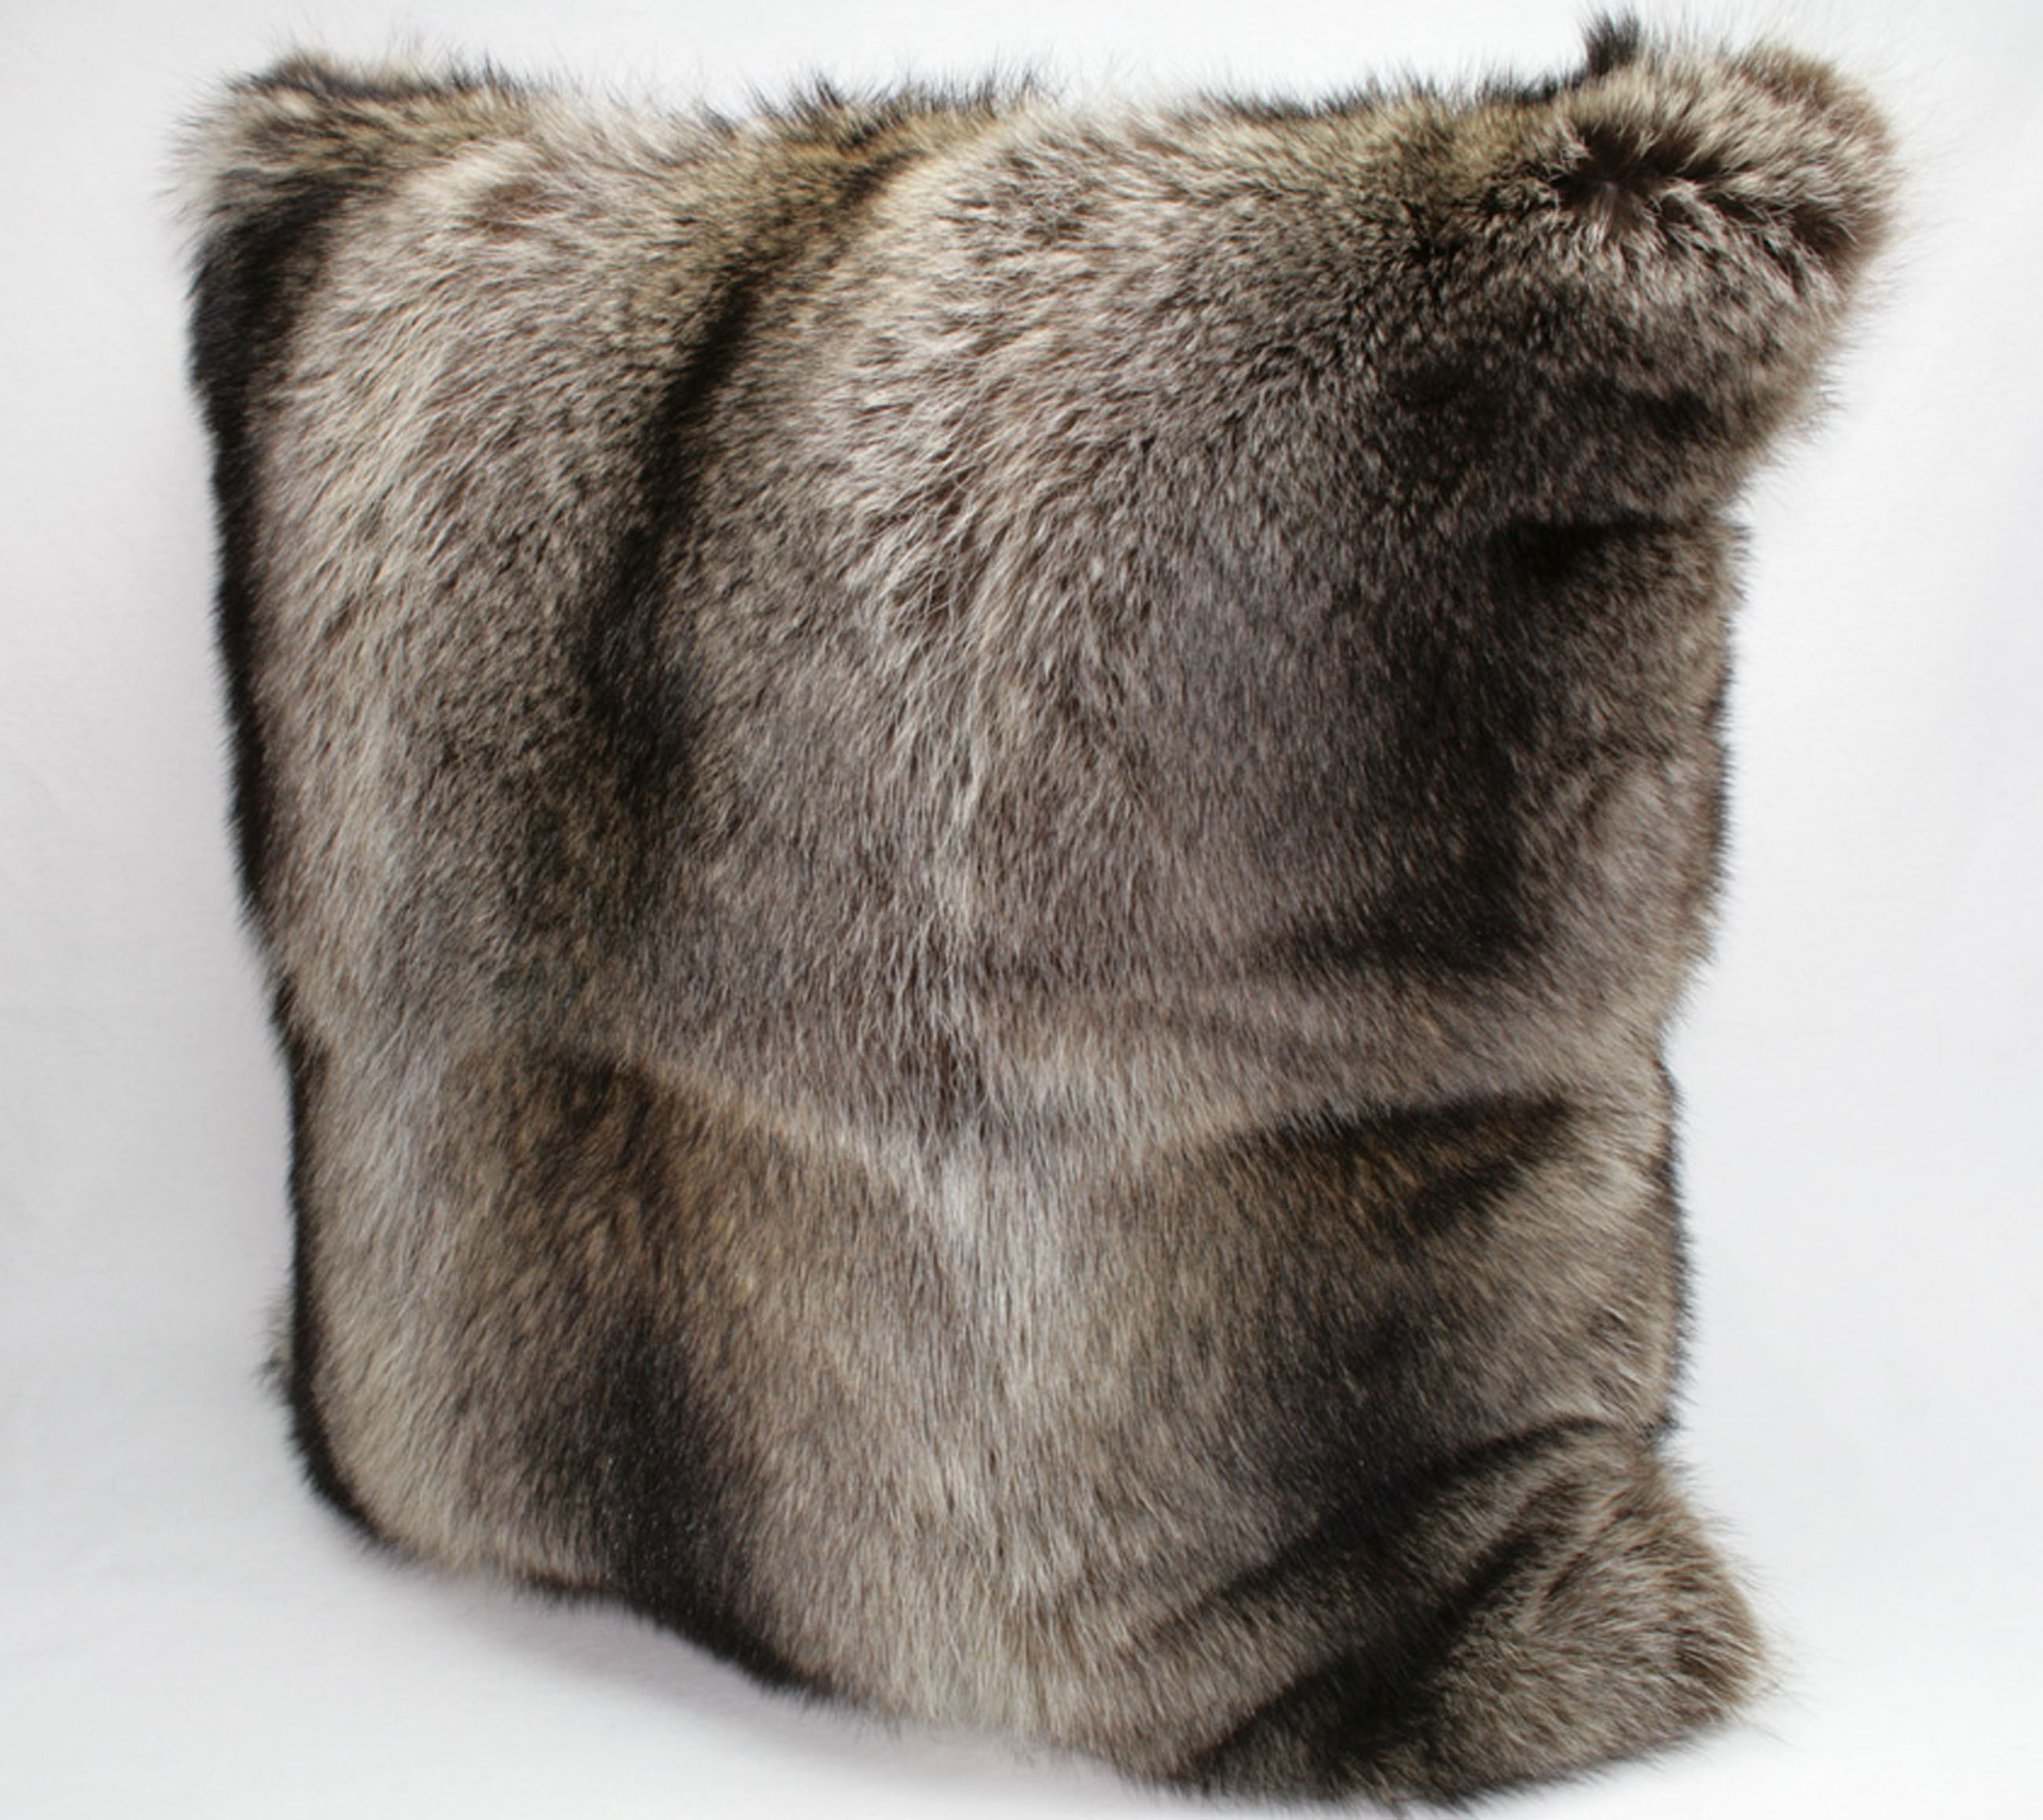 fur copy urstadt product of clutch front pillow evergreen swan products